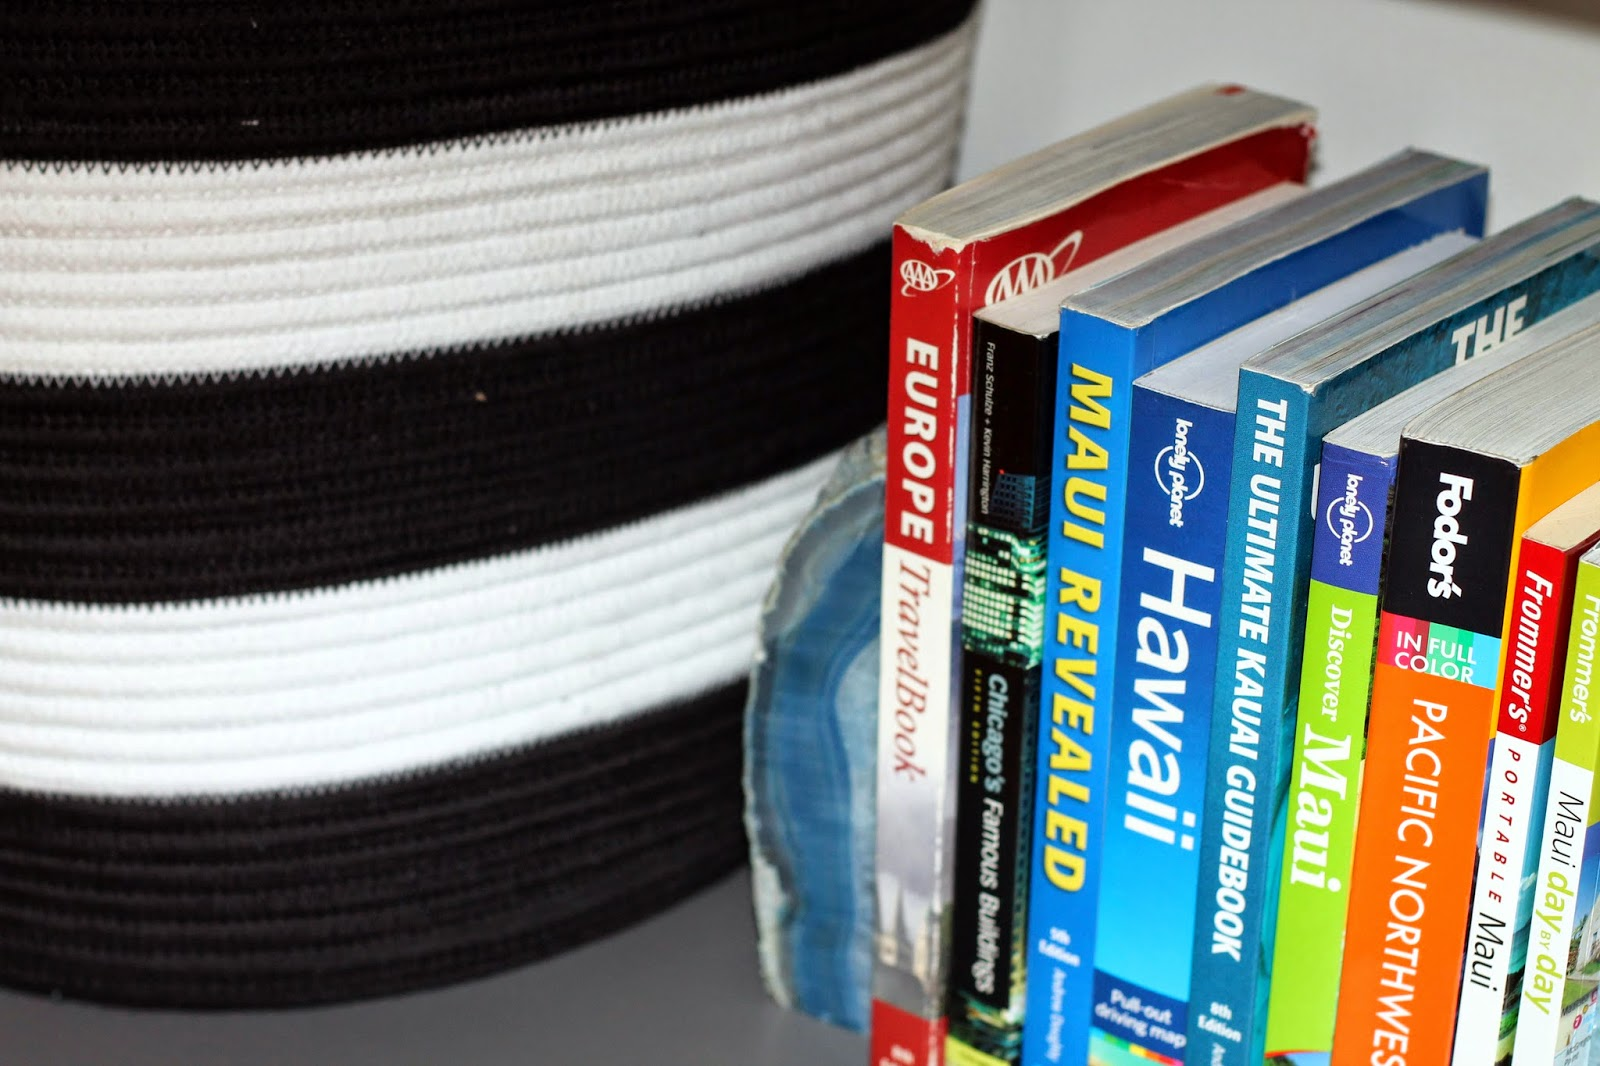 display travel books, black and white basket